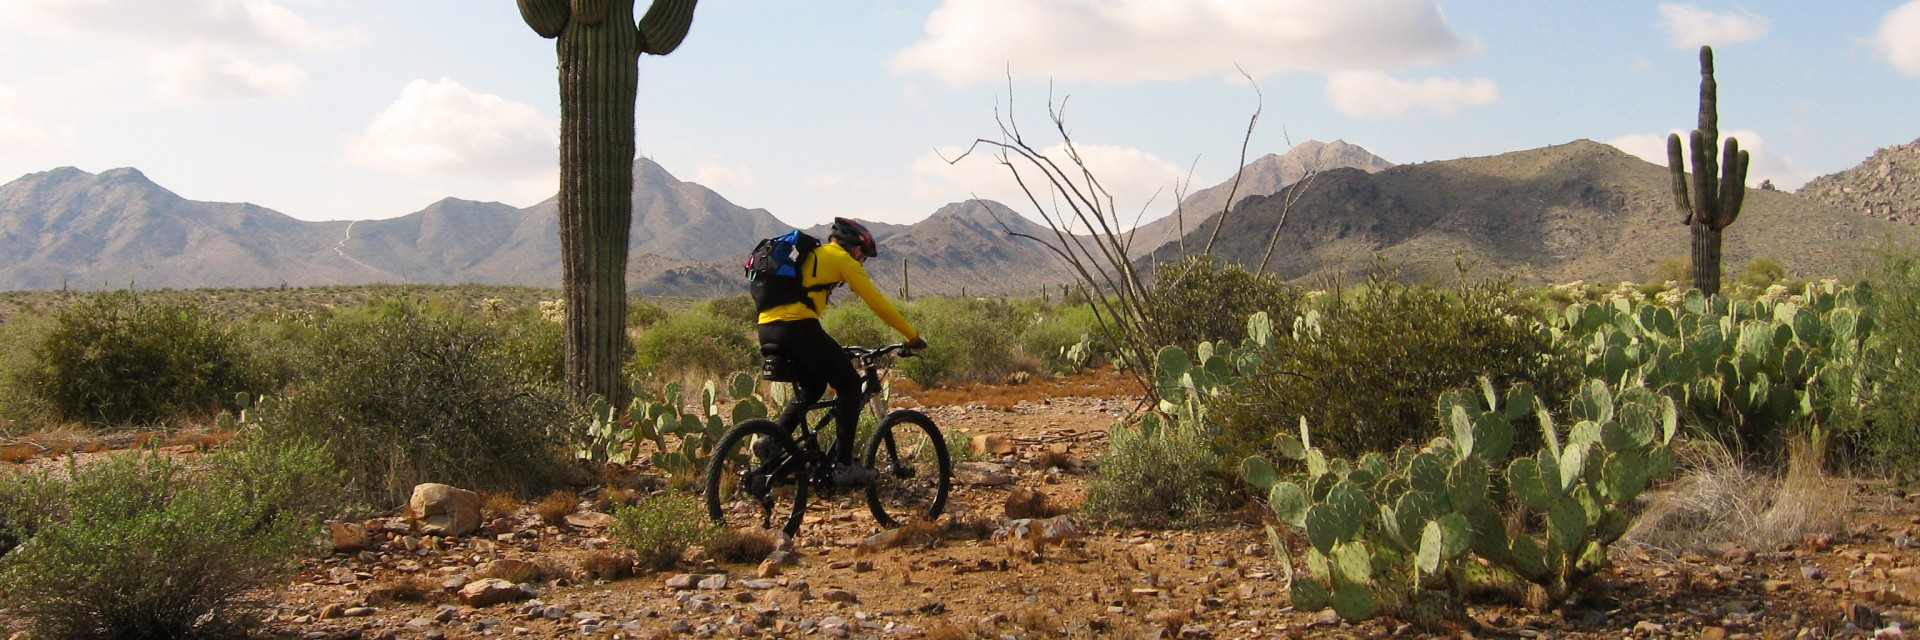 Sonoran Desert mountain biking in early and late winter